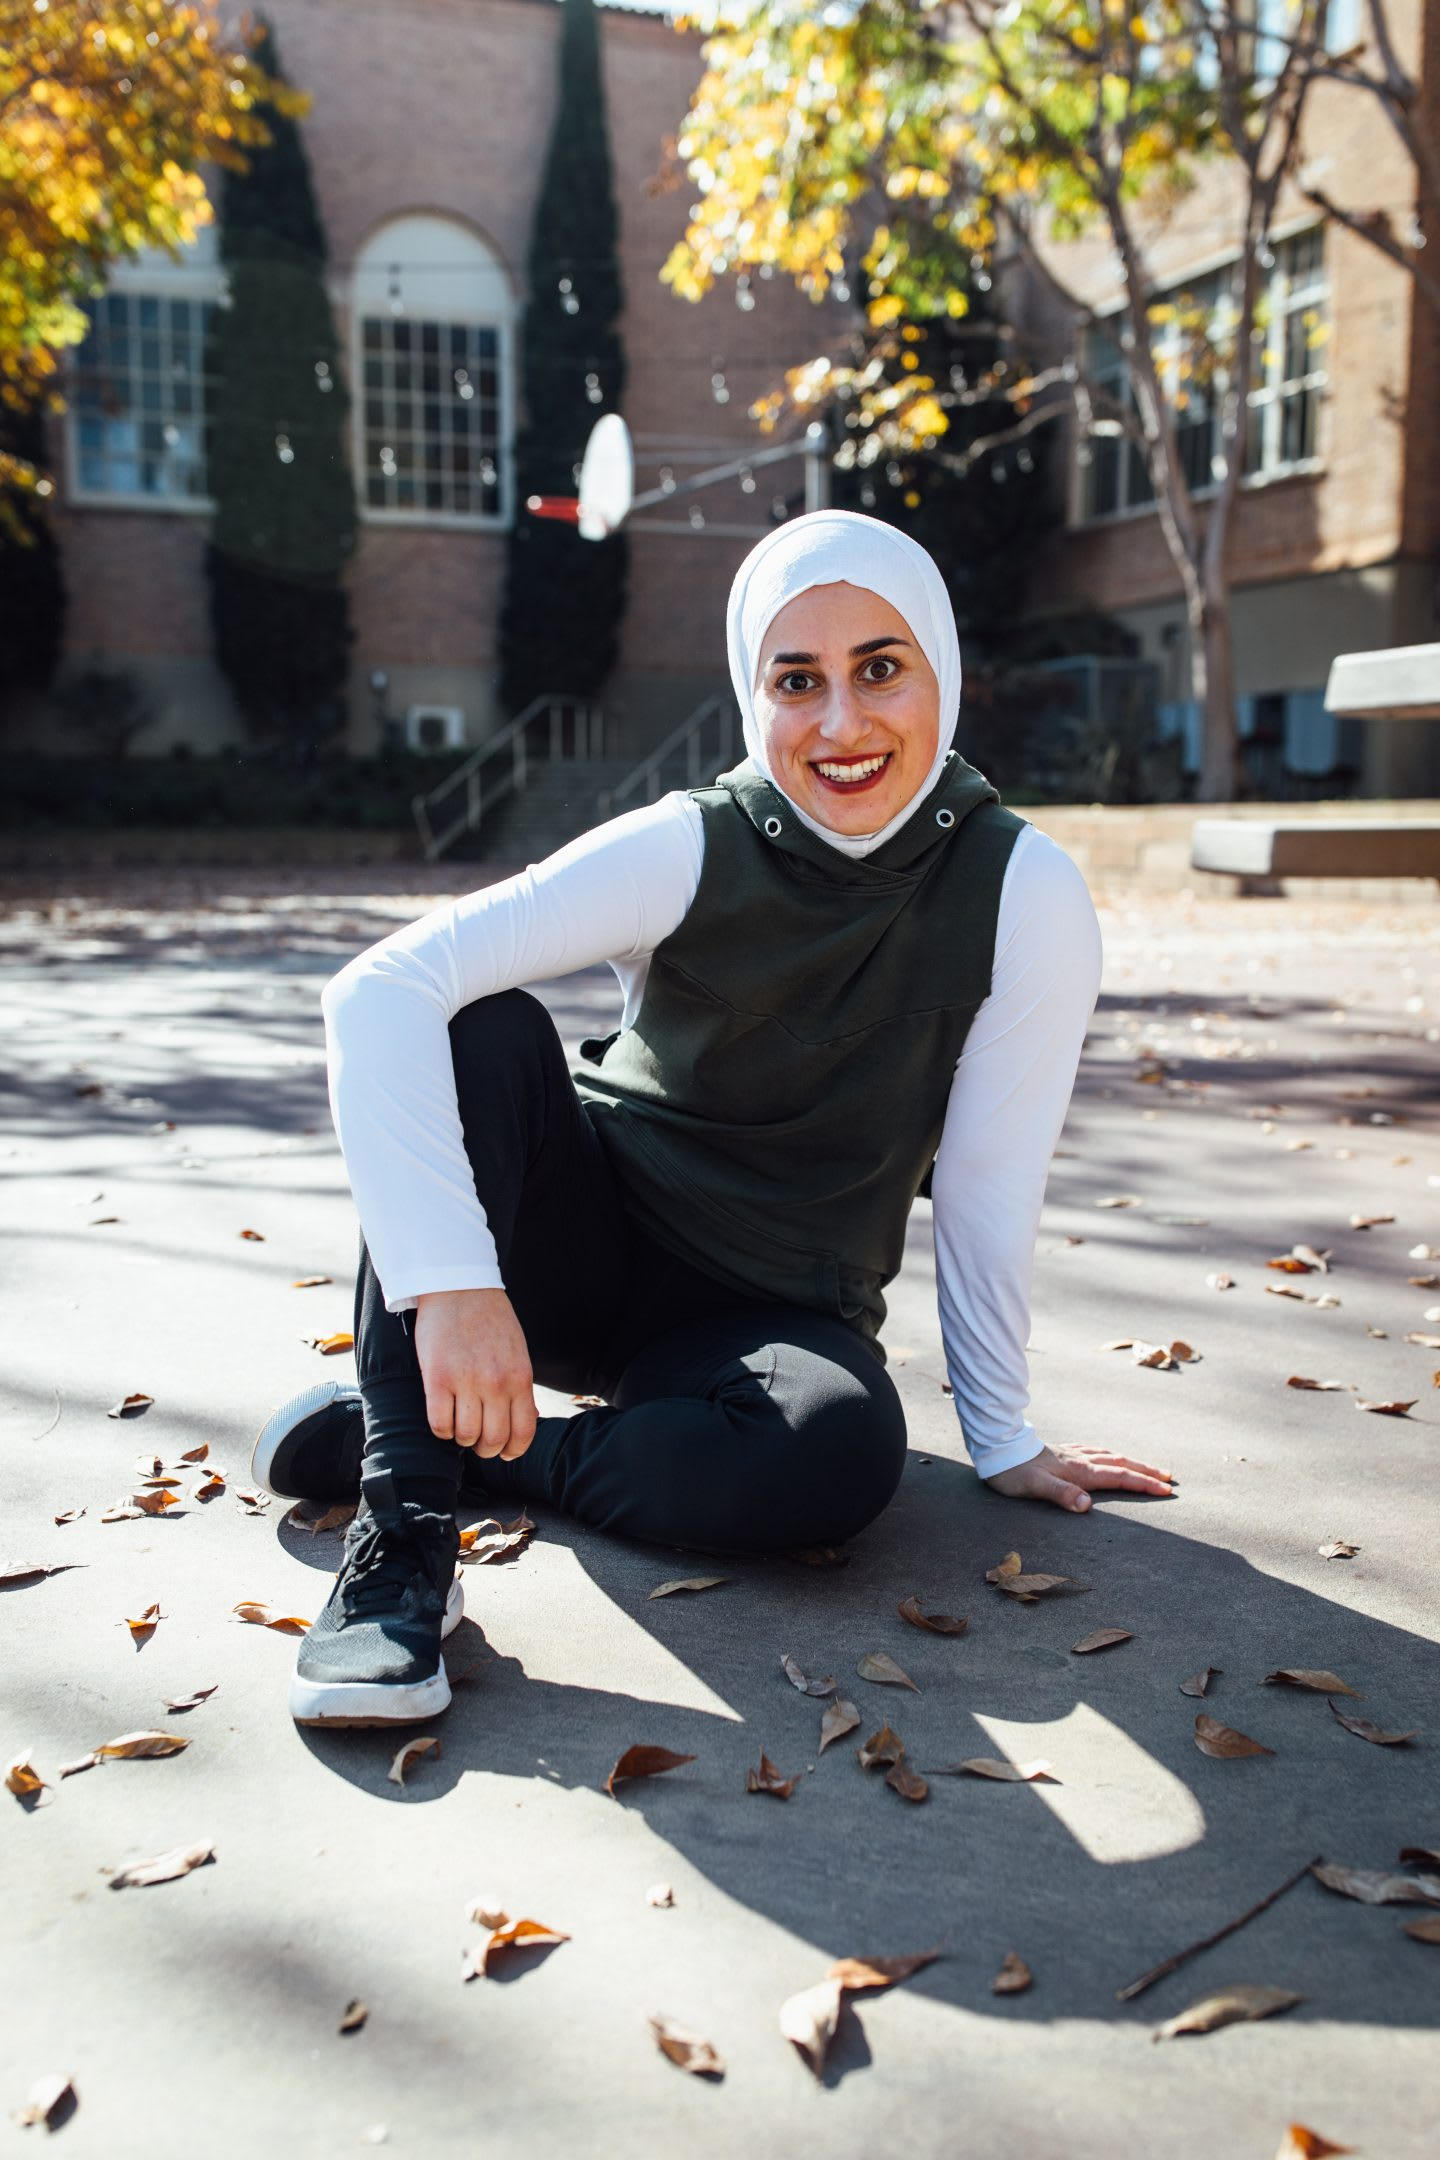 Girl sitting on the ground smiling, parkour, athlete, sports, action, fitness, Sara Mudallal